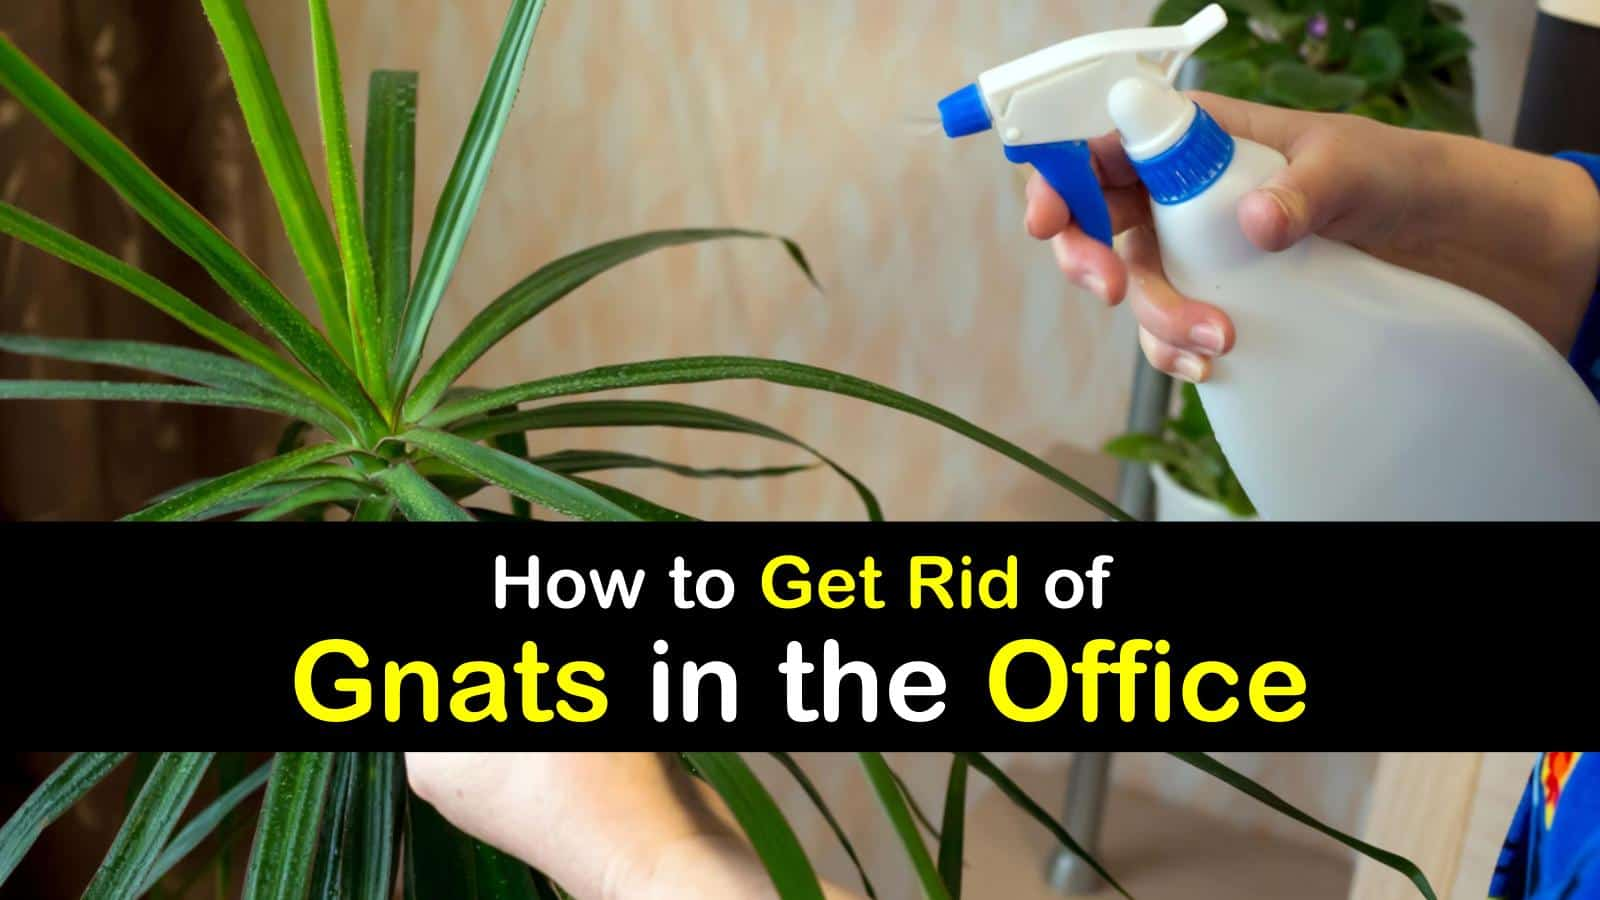 titleimg1 how to get rid of gnats in the office